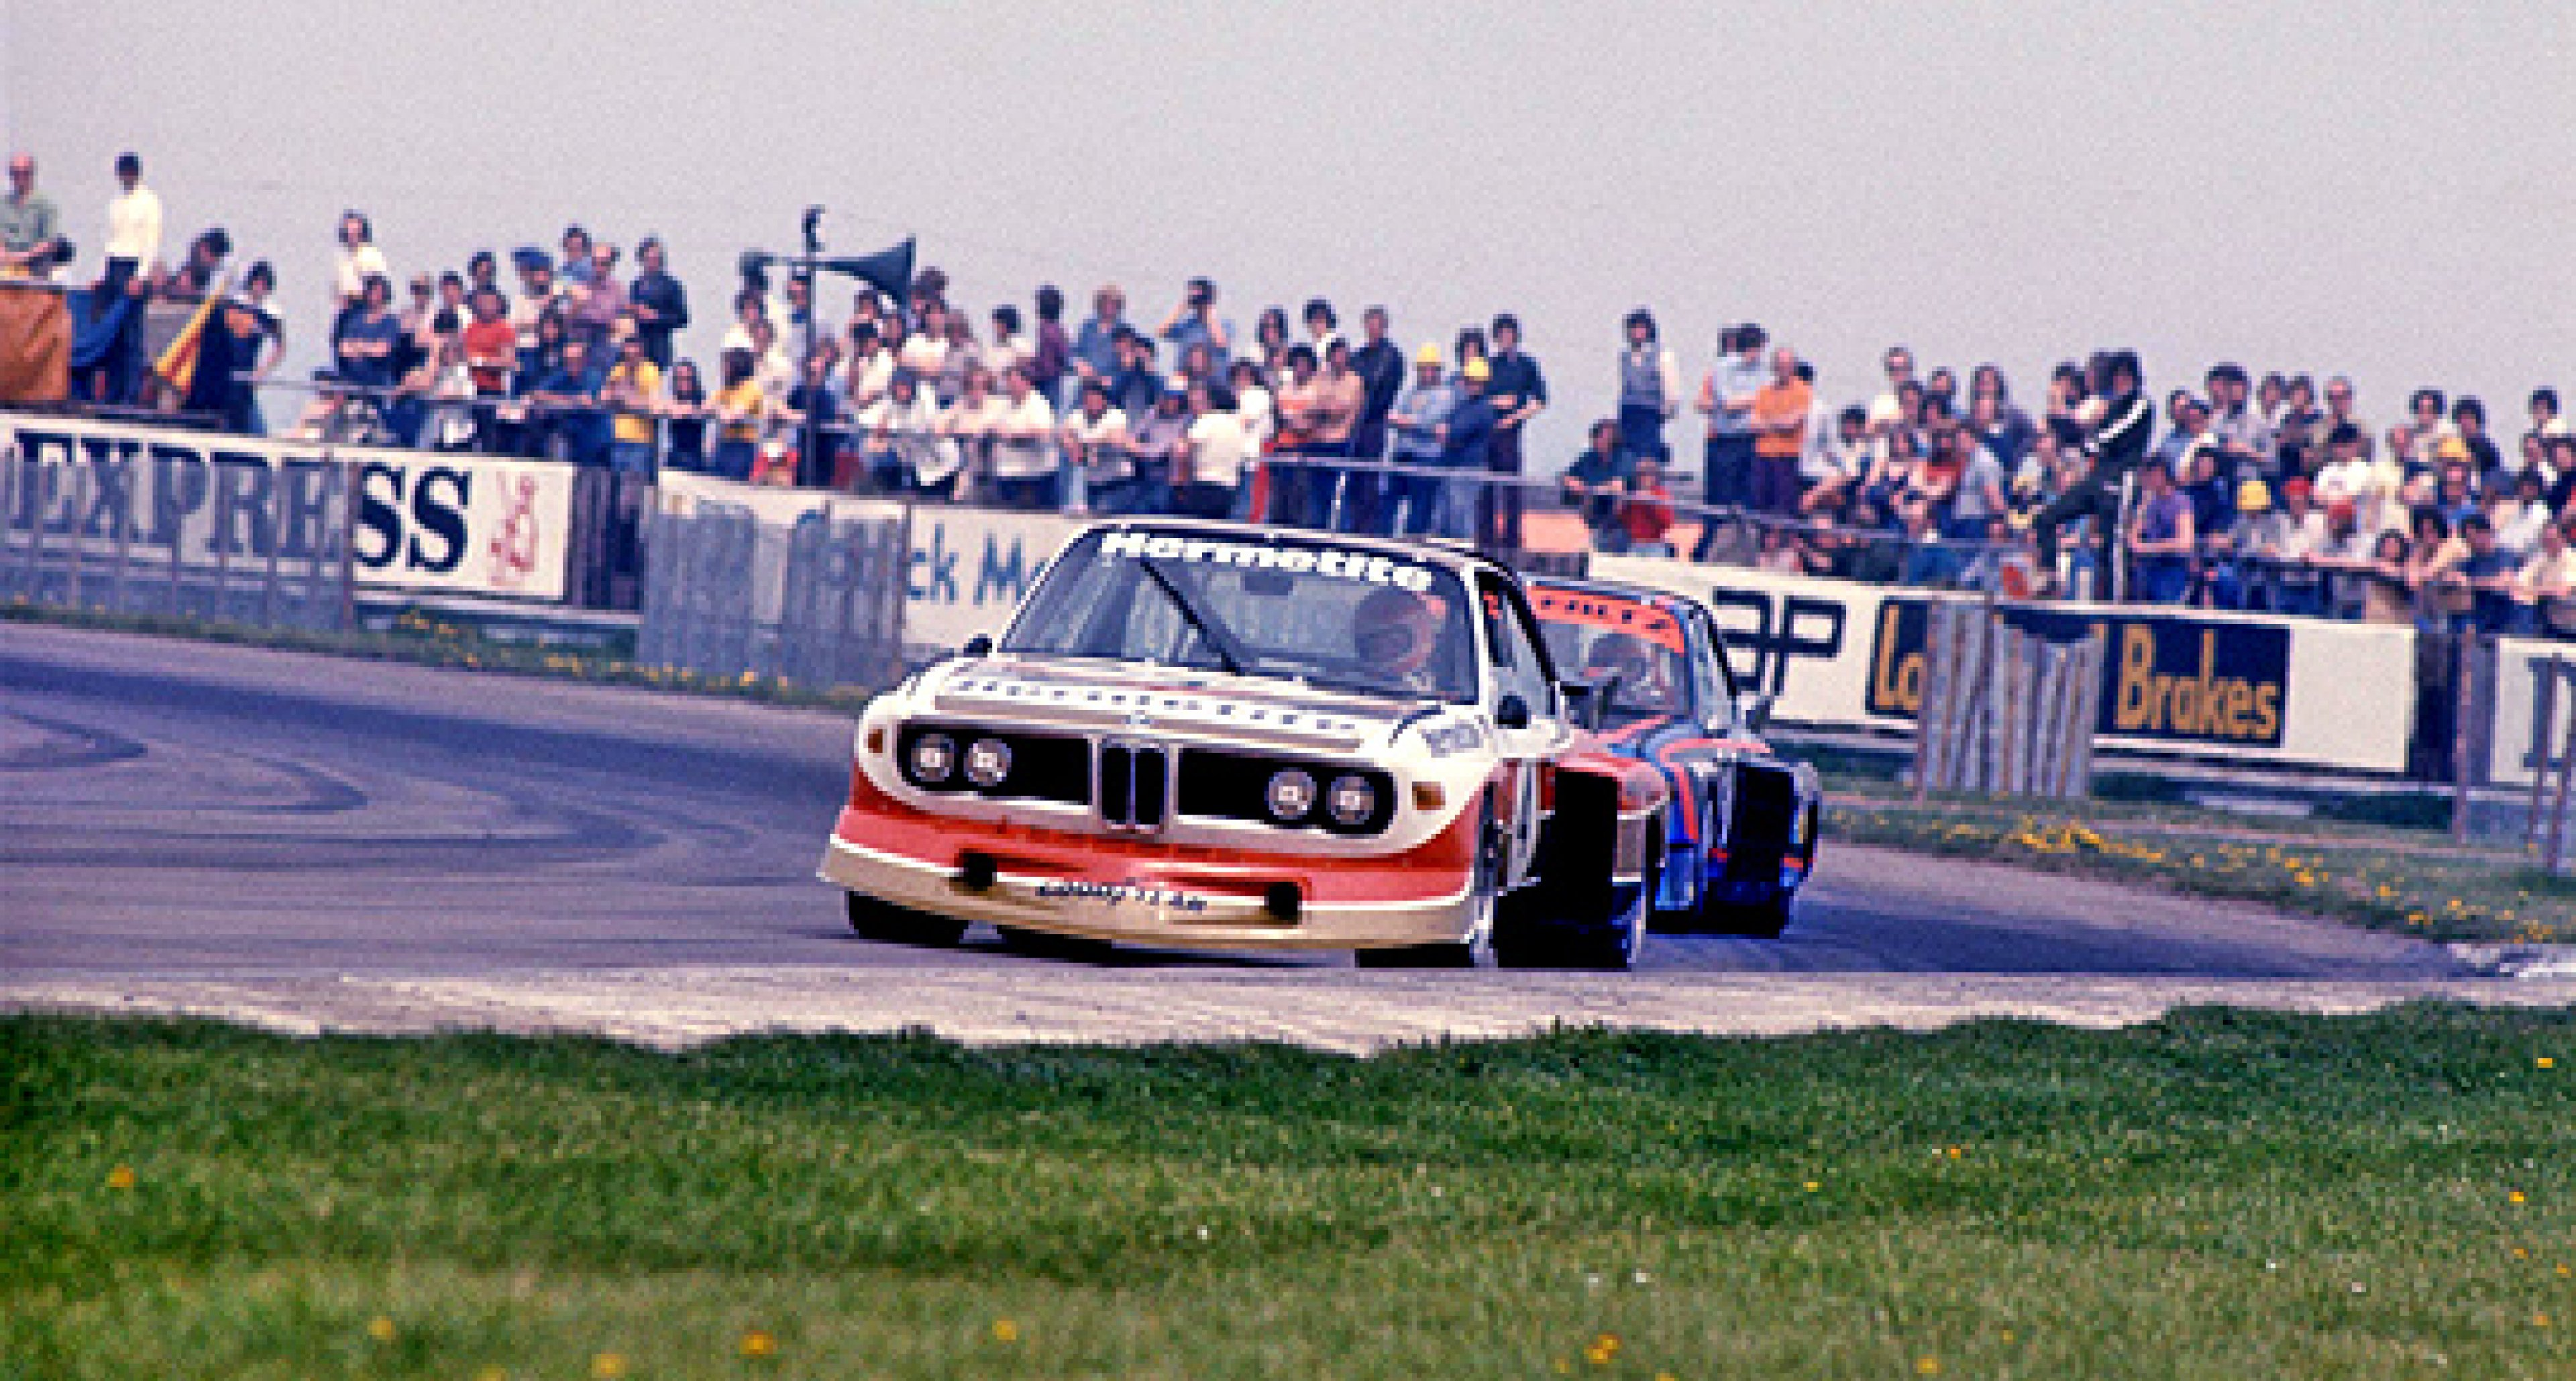 John Fitzpatrick to make racing return to Brands Hatch in a BMW 3.5 CSL